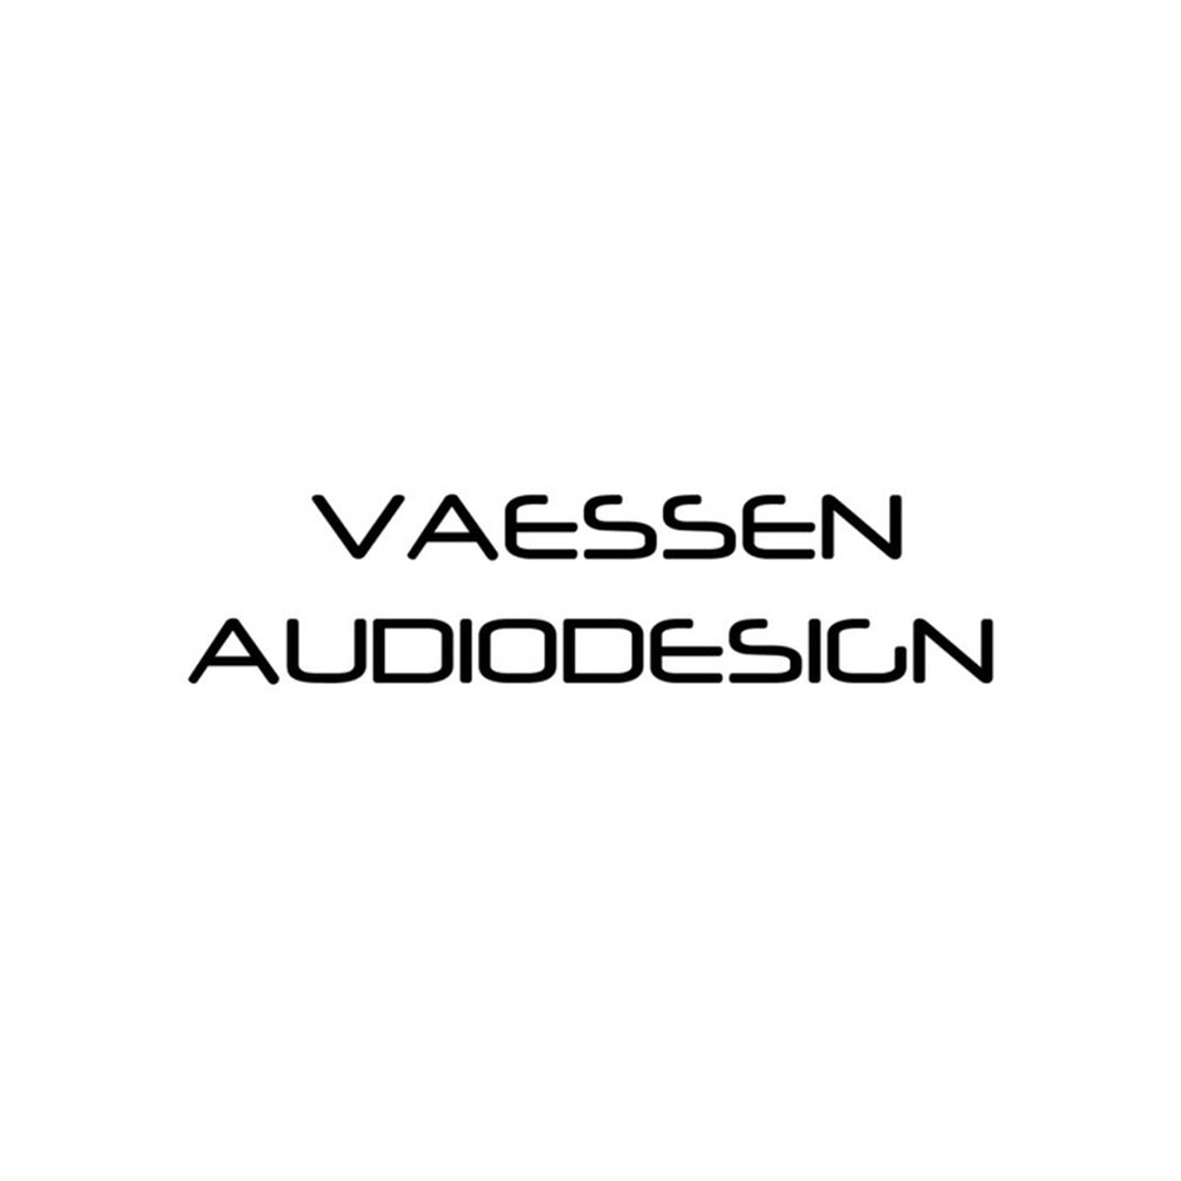 Vaessen audiodesign